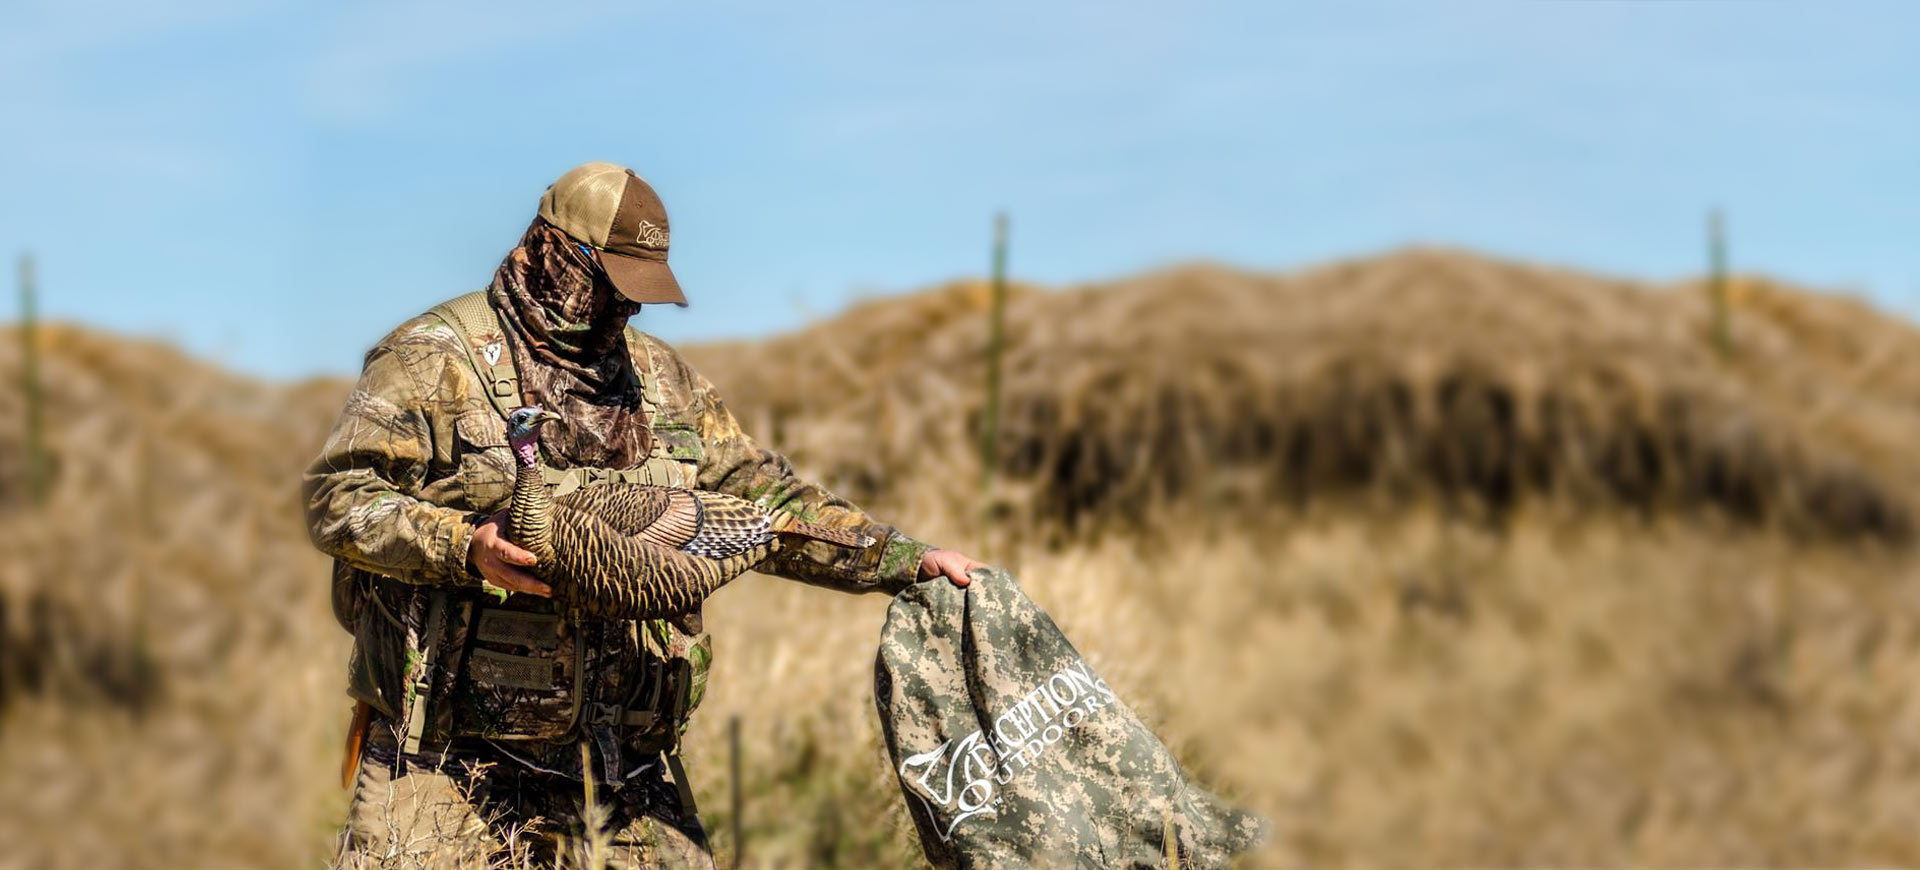 bagging home slider - Sandhill Crane Call